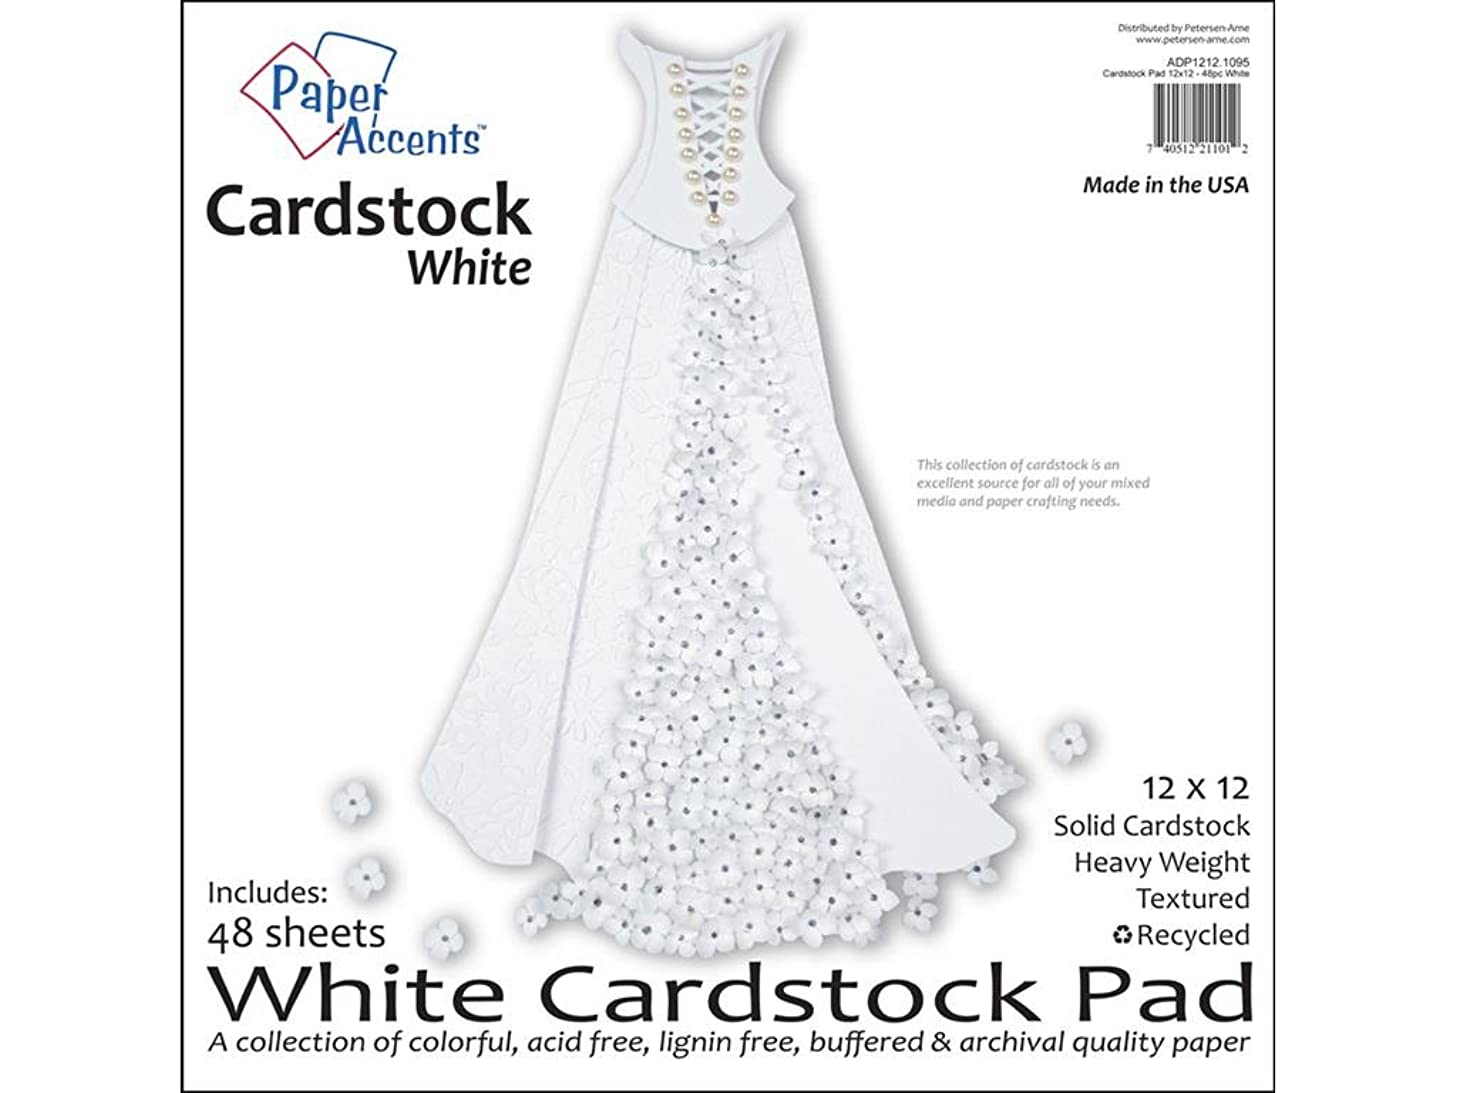 Accent Design Paper Accents 12x12 Cdstkt Pad White